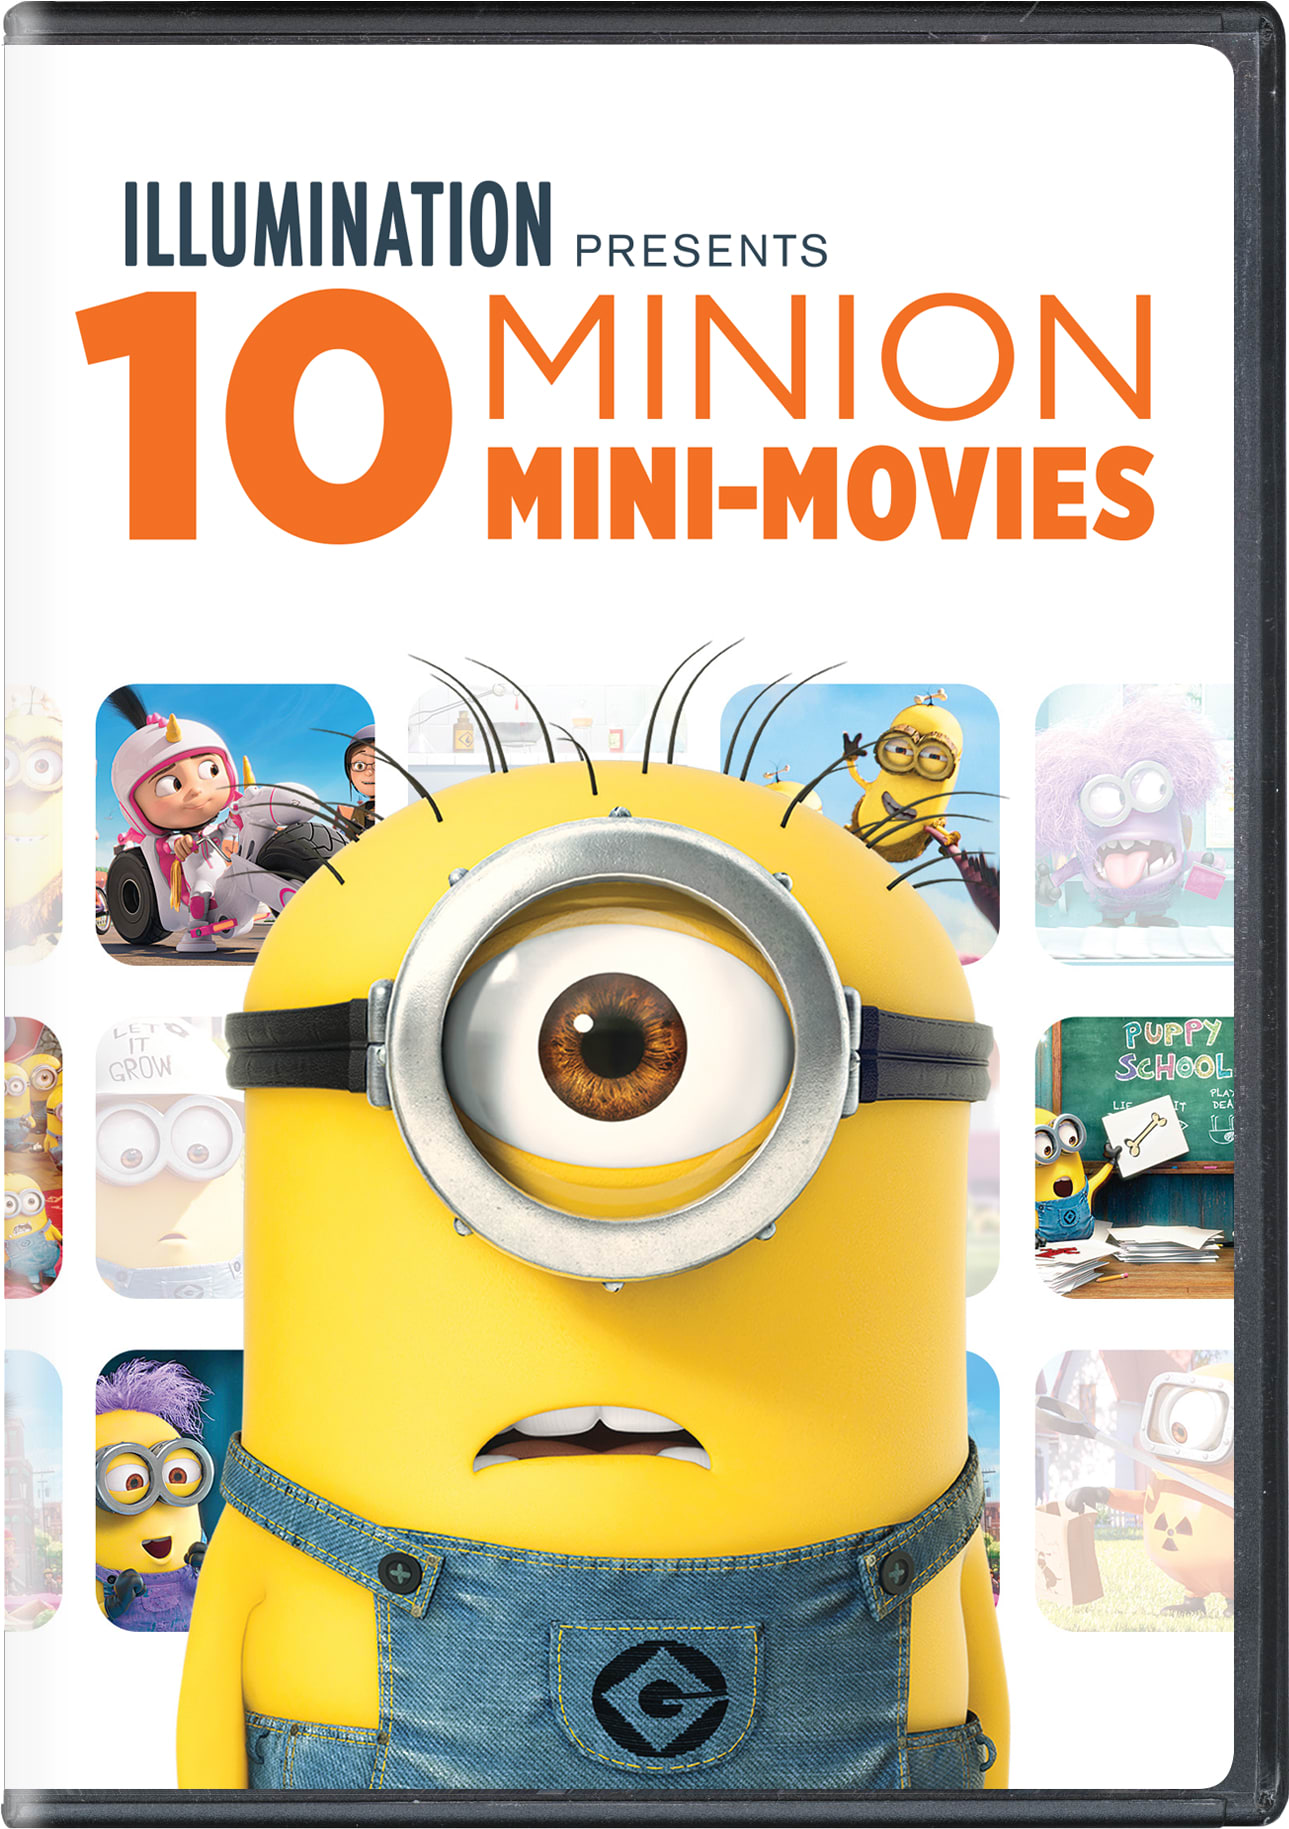 Illumination Presents: 10 Minion Mini-Movies [DVD]